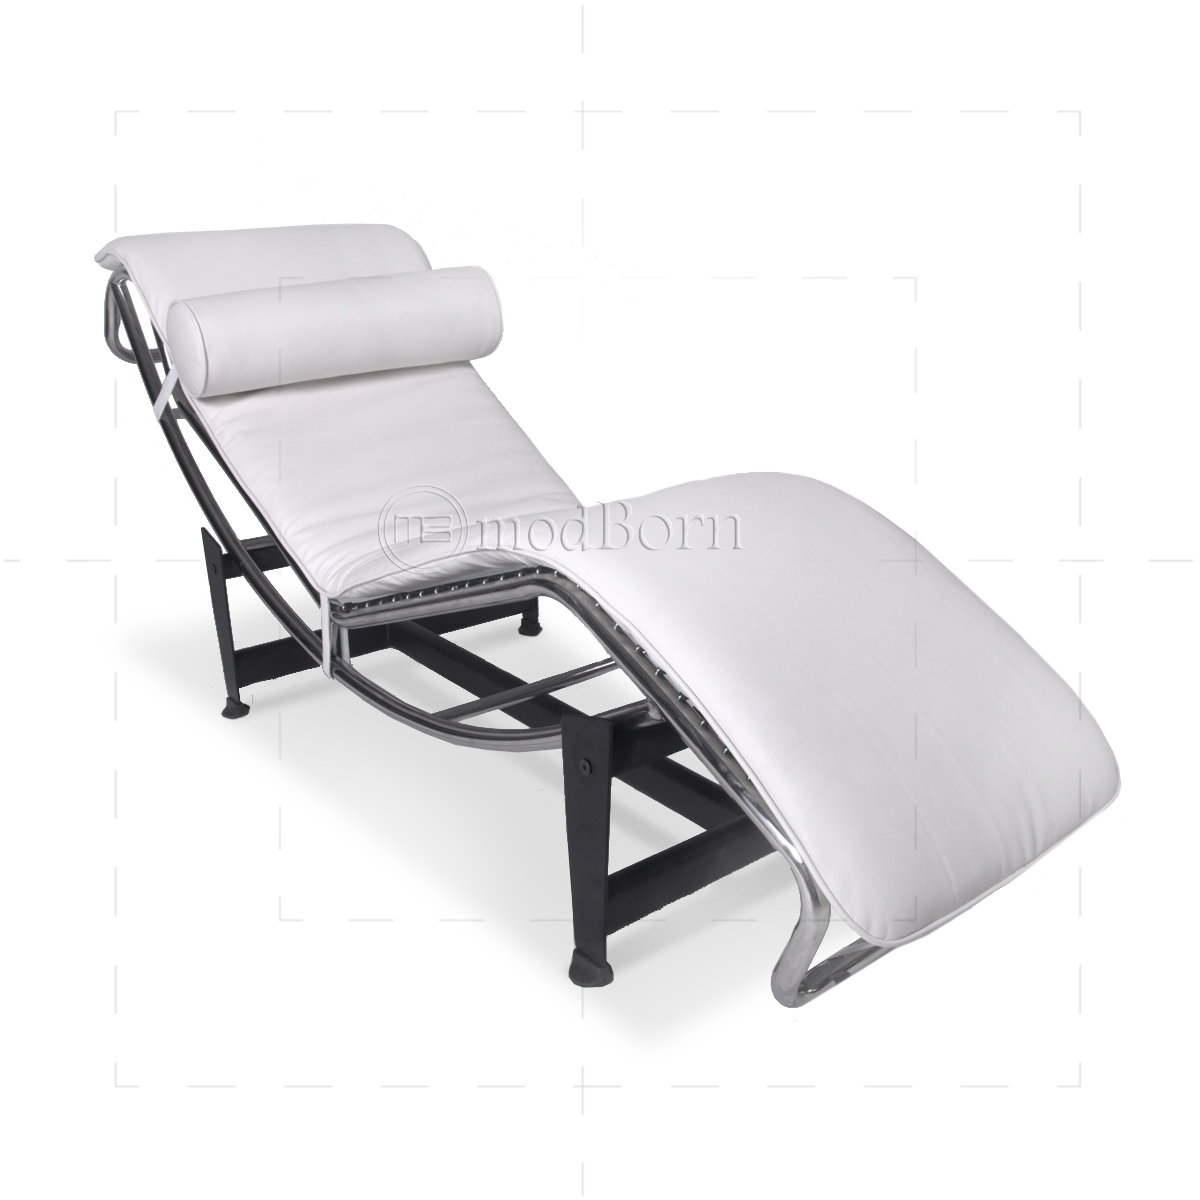 Le corbusier style lc4 chaise longue white leather replica for Chaise longue by le corbusier